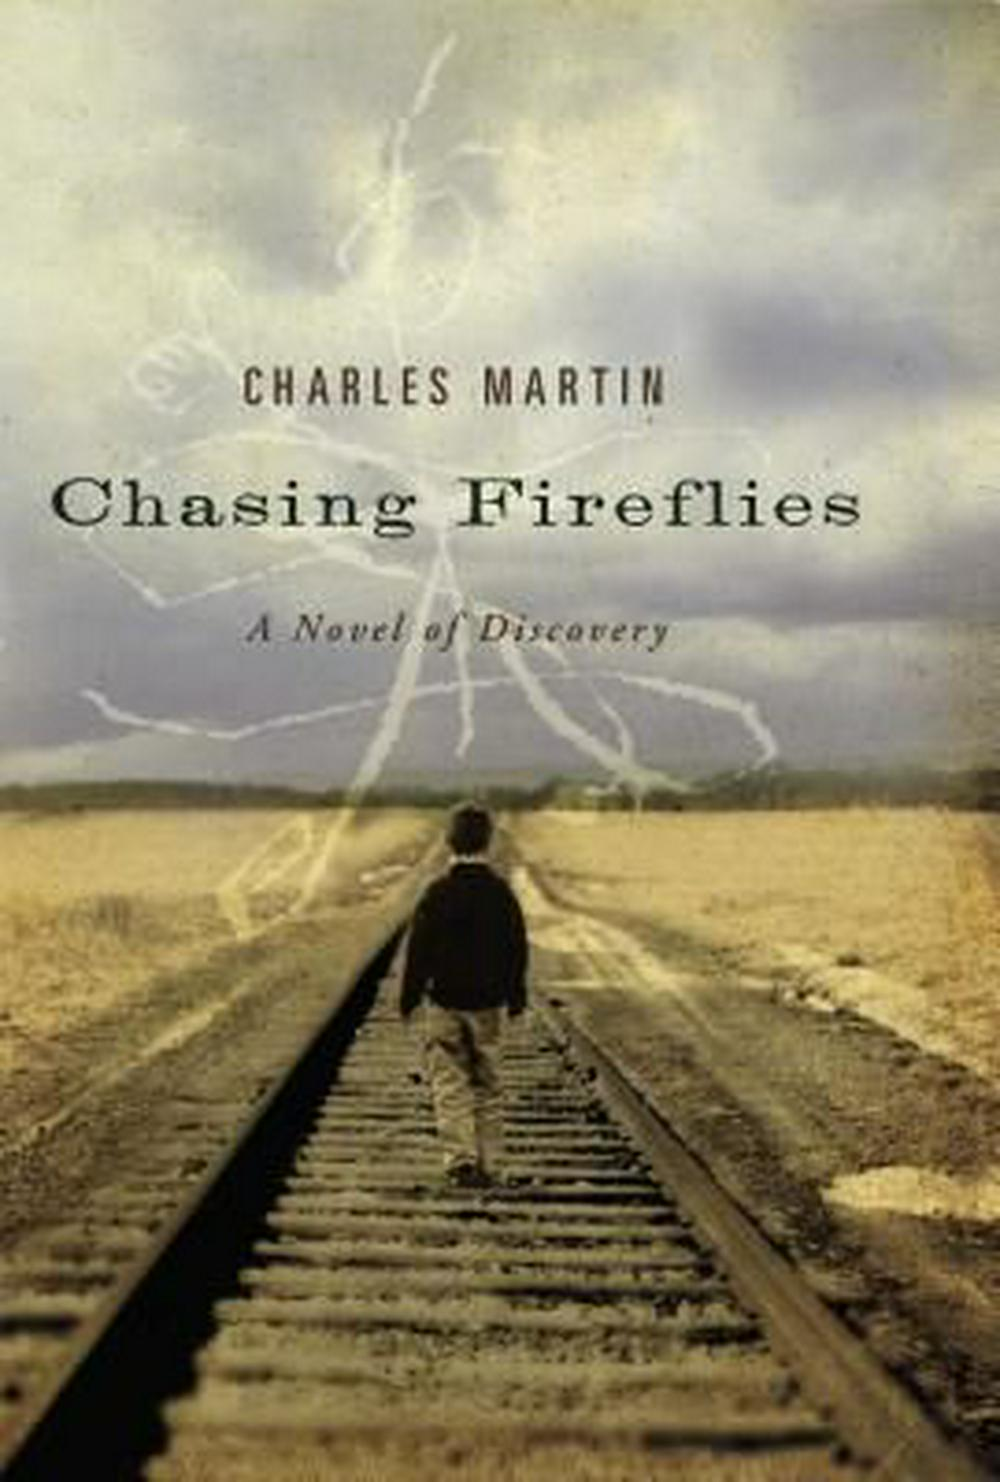 Chasing Fireflies: A Novel of Discovery by Charles Martin, ISBN: 9781595543257